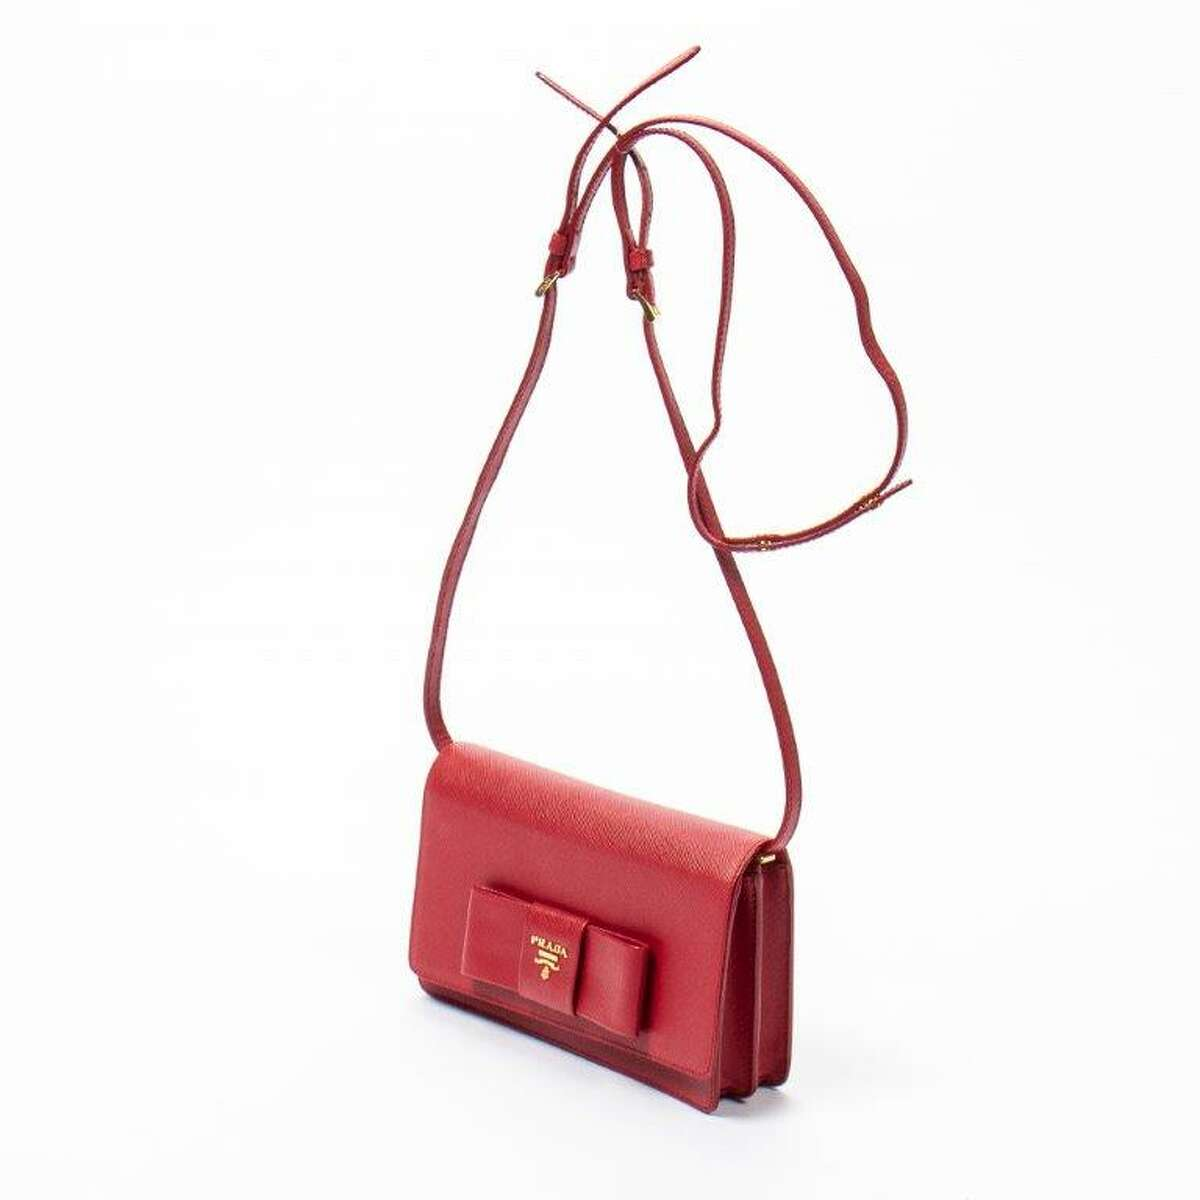 This red Prada handbag will be included in the Dec. 5 luxury goods auction at Gallery Auctions.